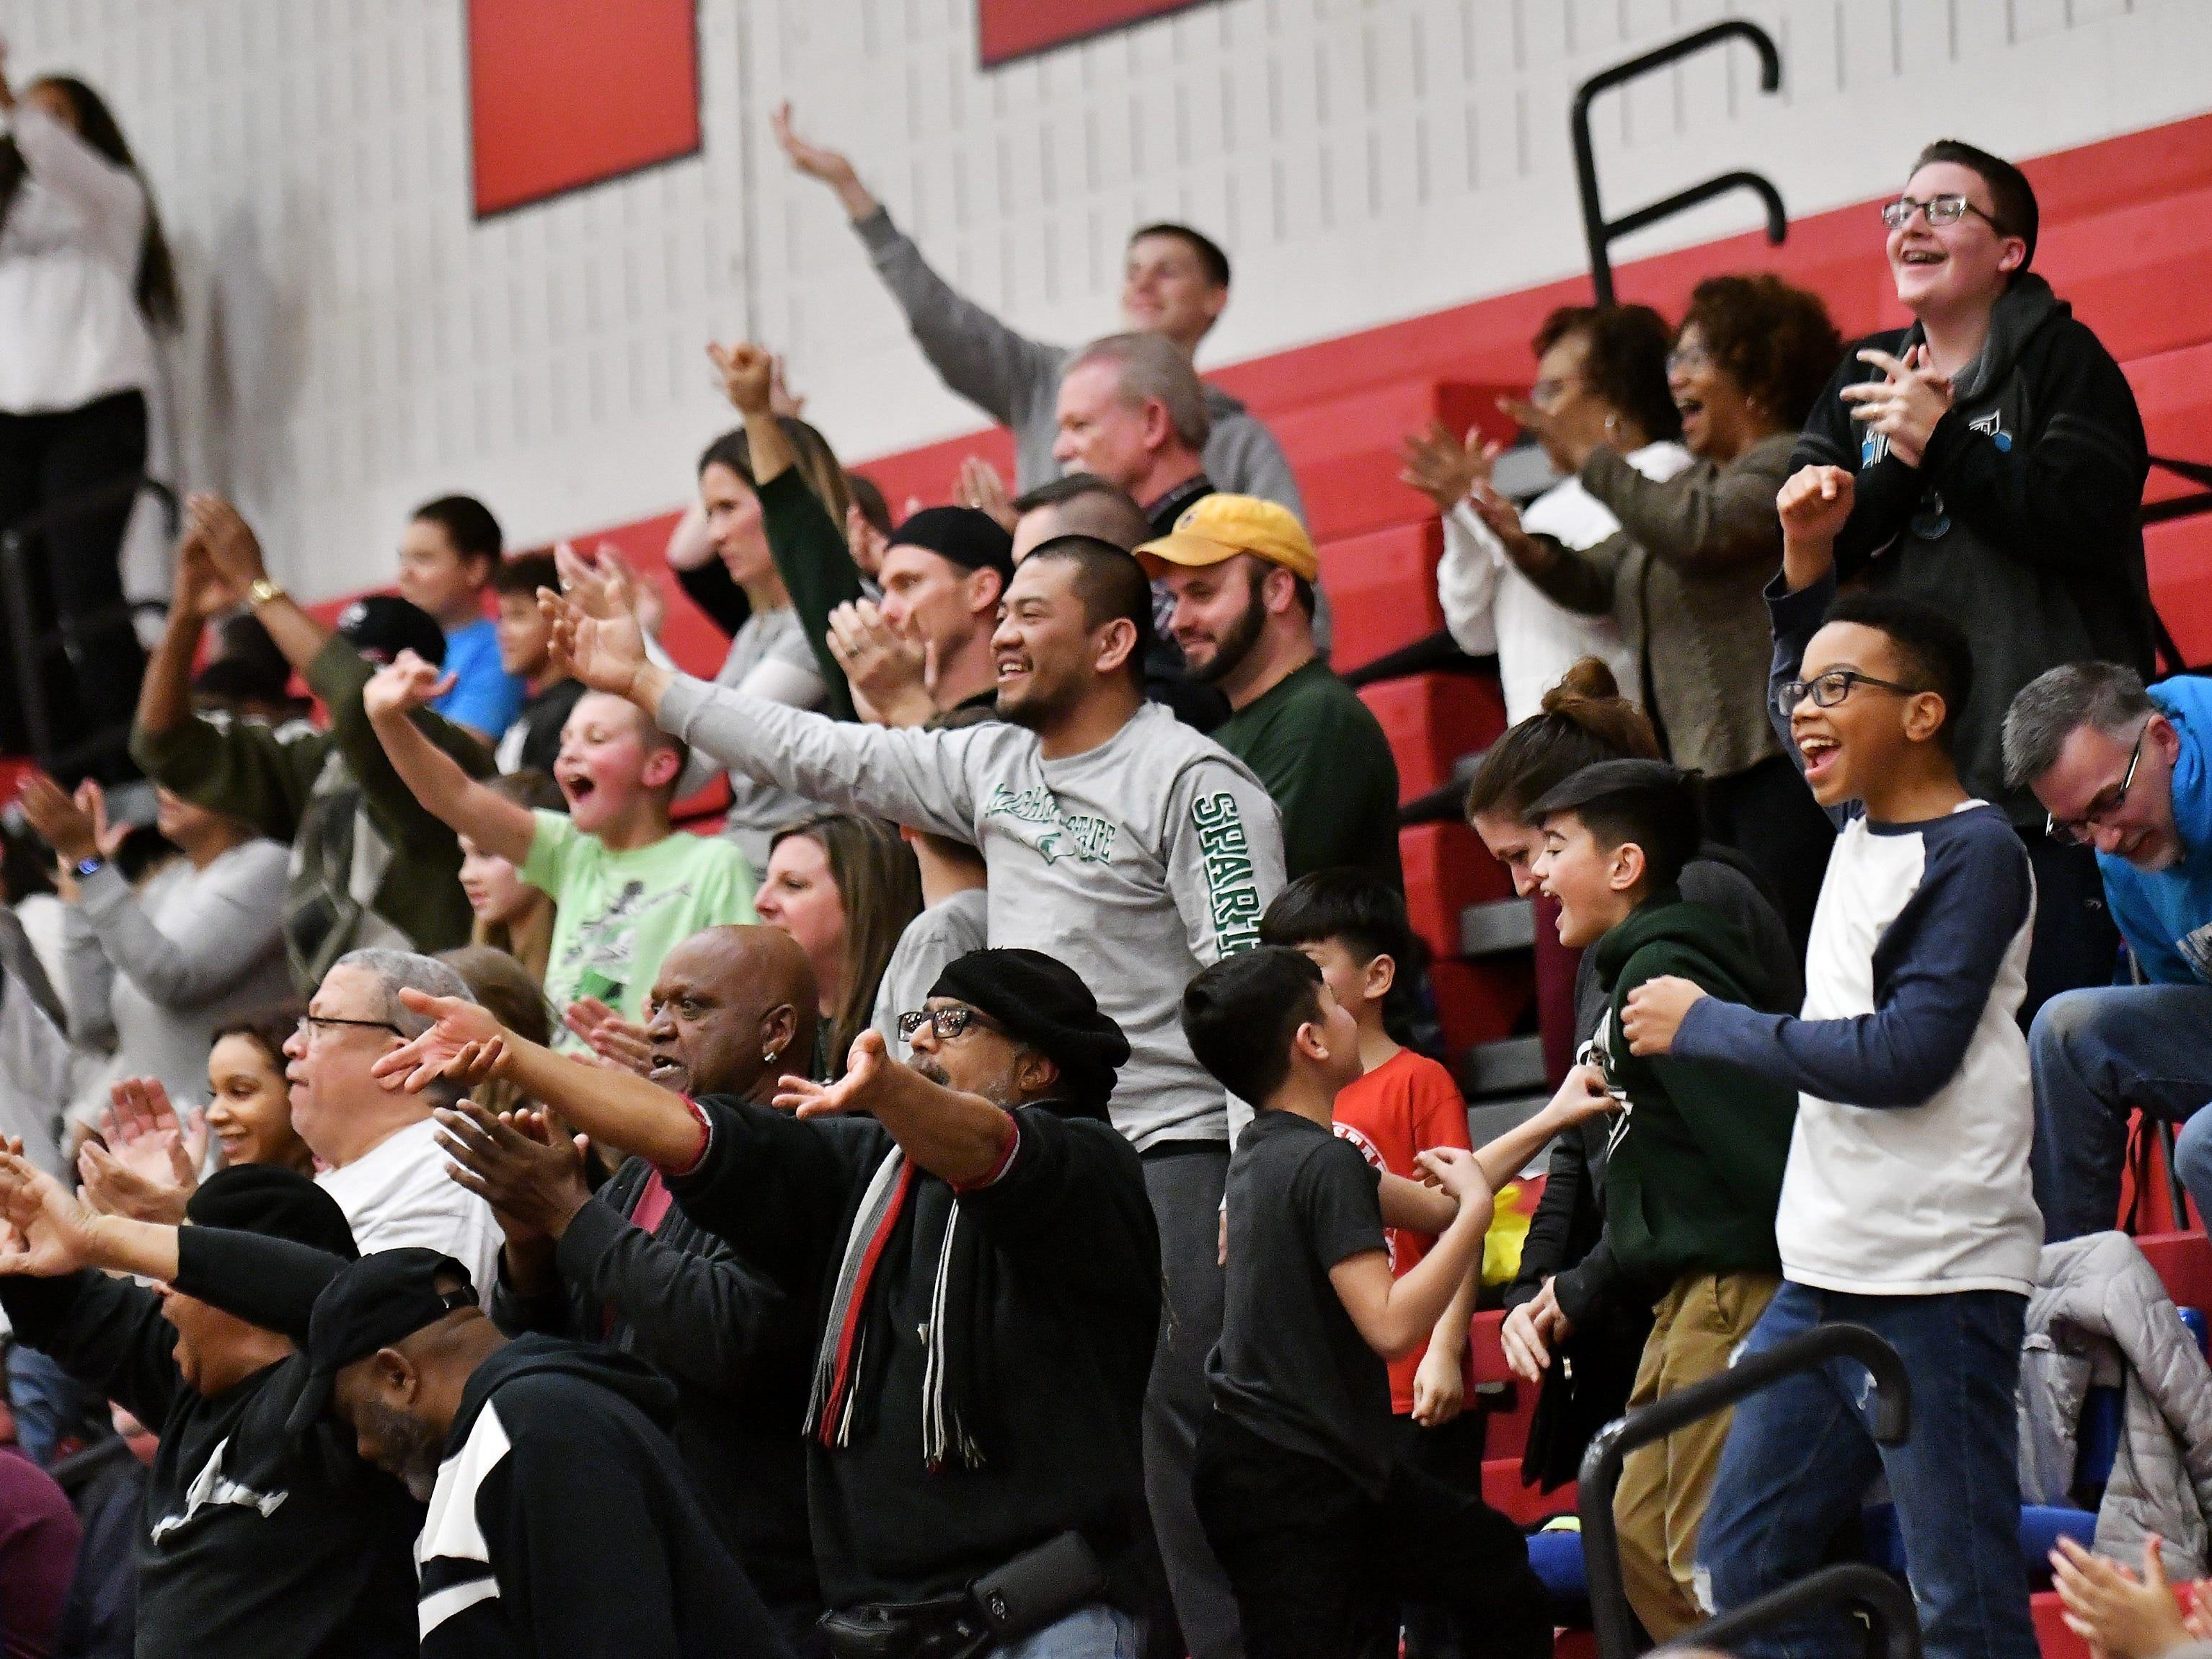 New Haven fans taunt the Chippewa Valley fans after New Haven regains the lead in the second half.